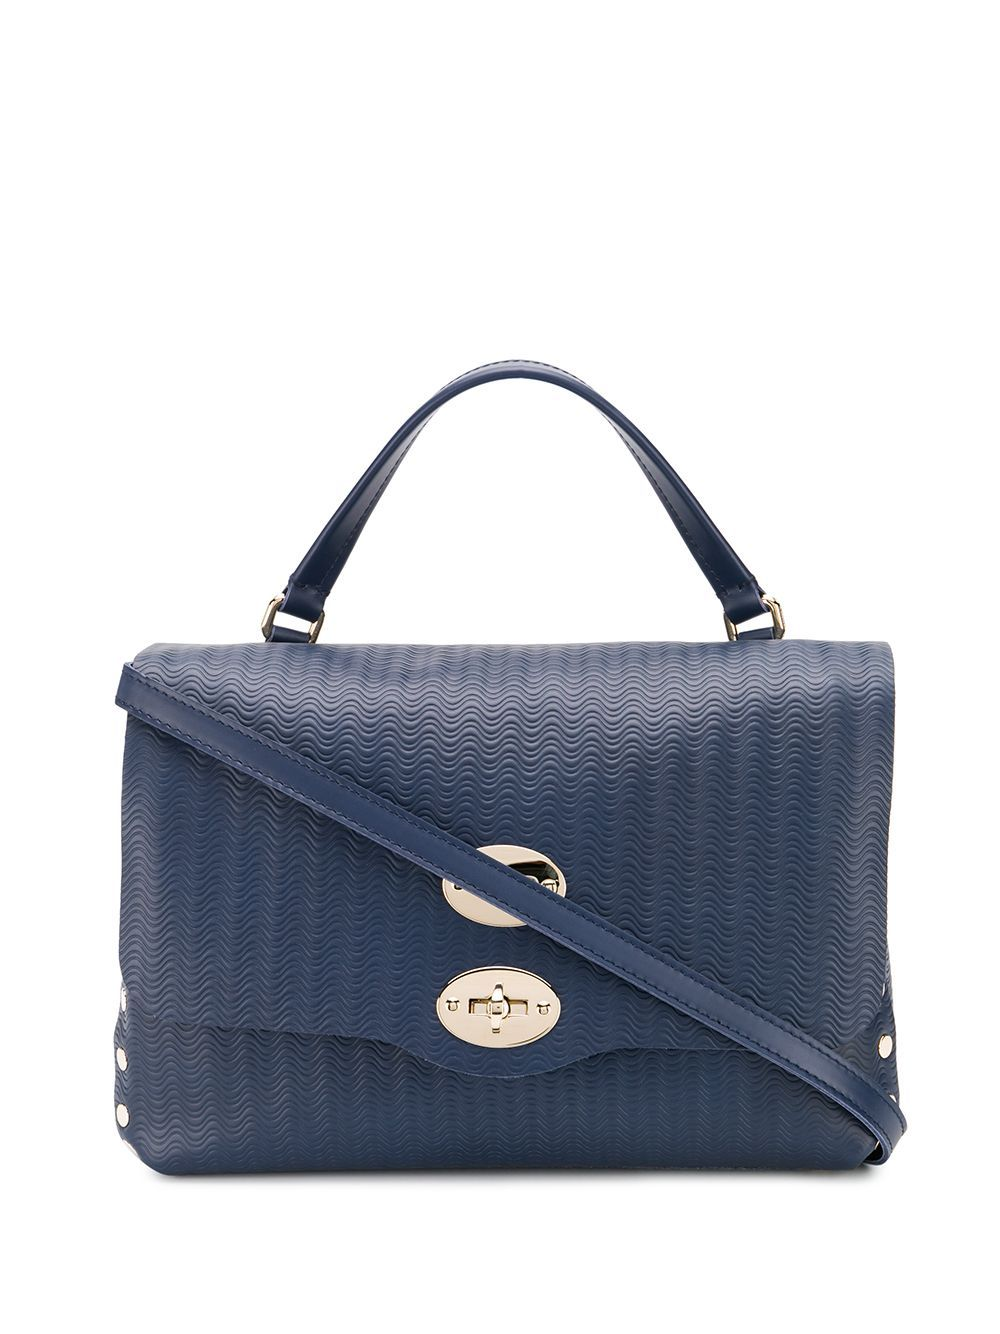 Zanellato wave-effect Tote - Farfetch